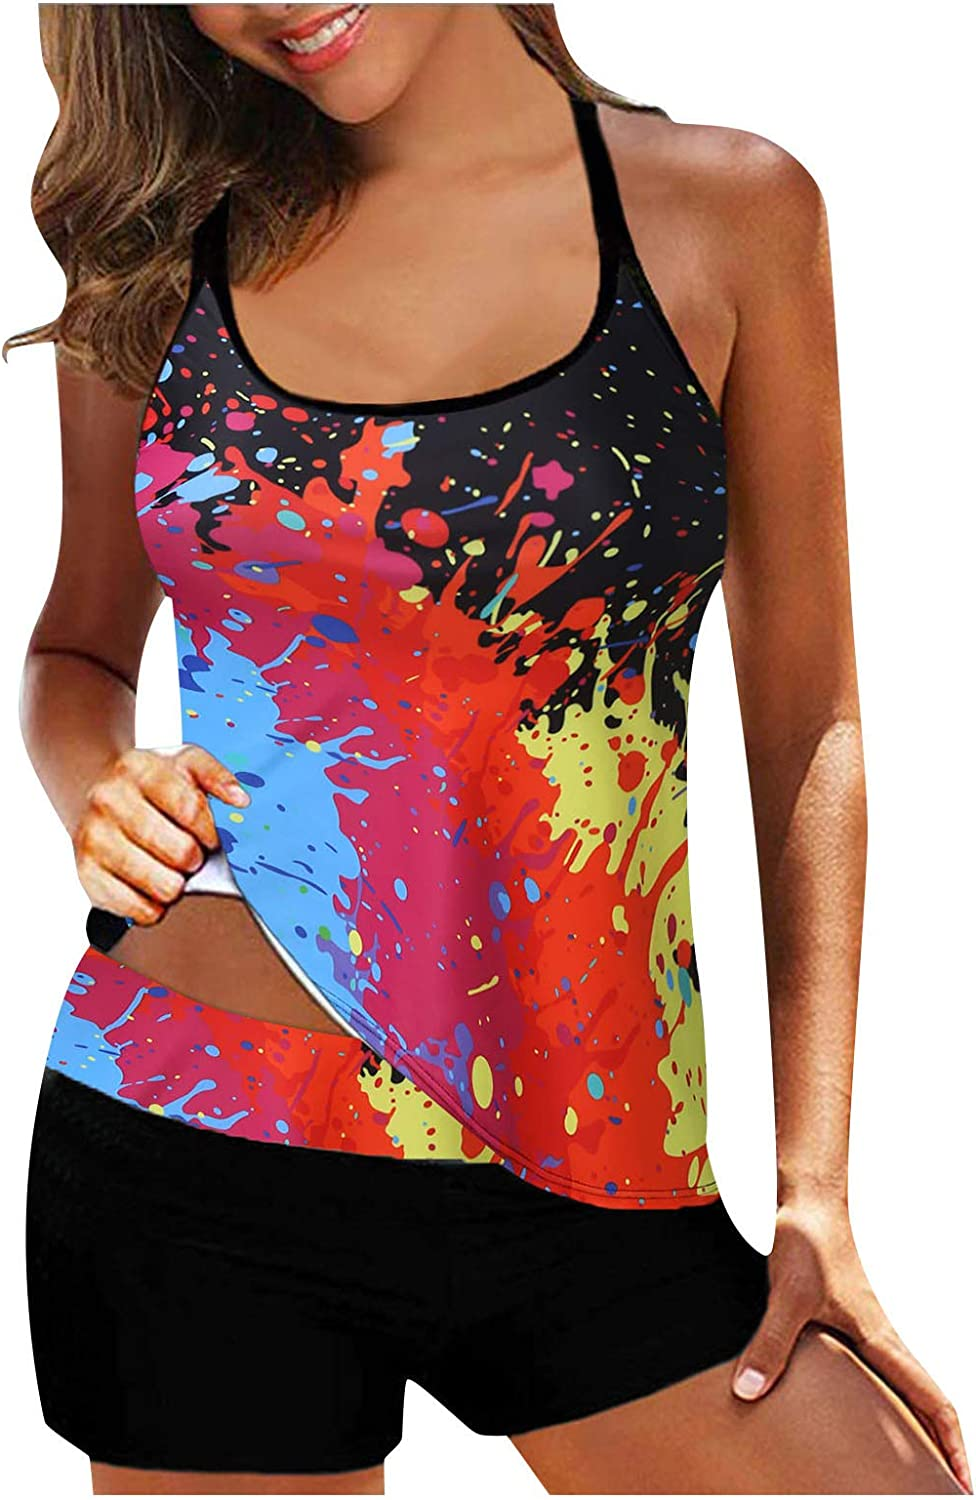 Beppter Tankini Swimsuits for Womens Tankini Top Boyshorts Two Piece Swimsuits Sports Bathing Suit Tank Top and Shorts